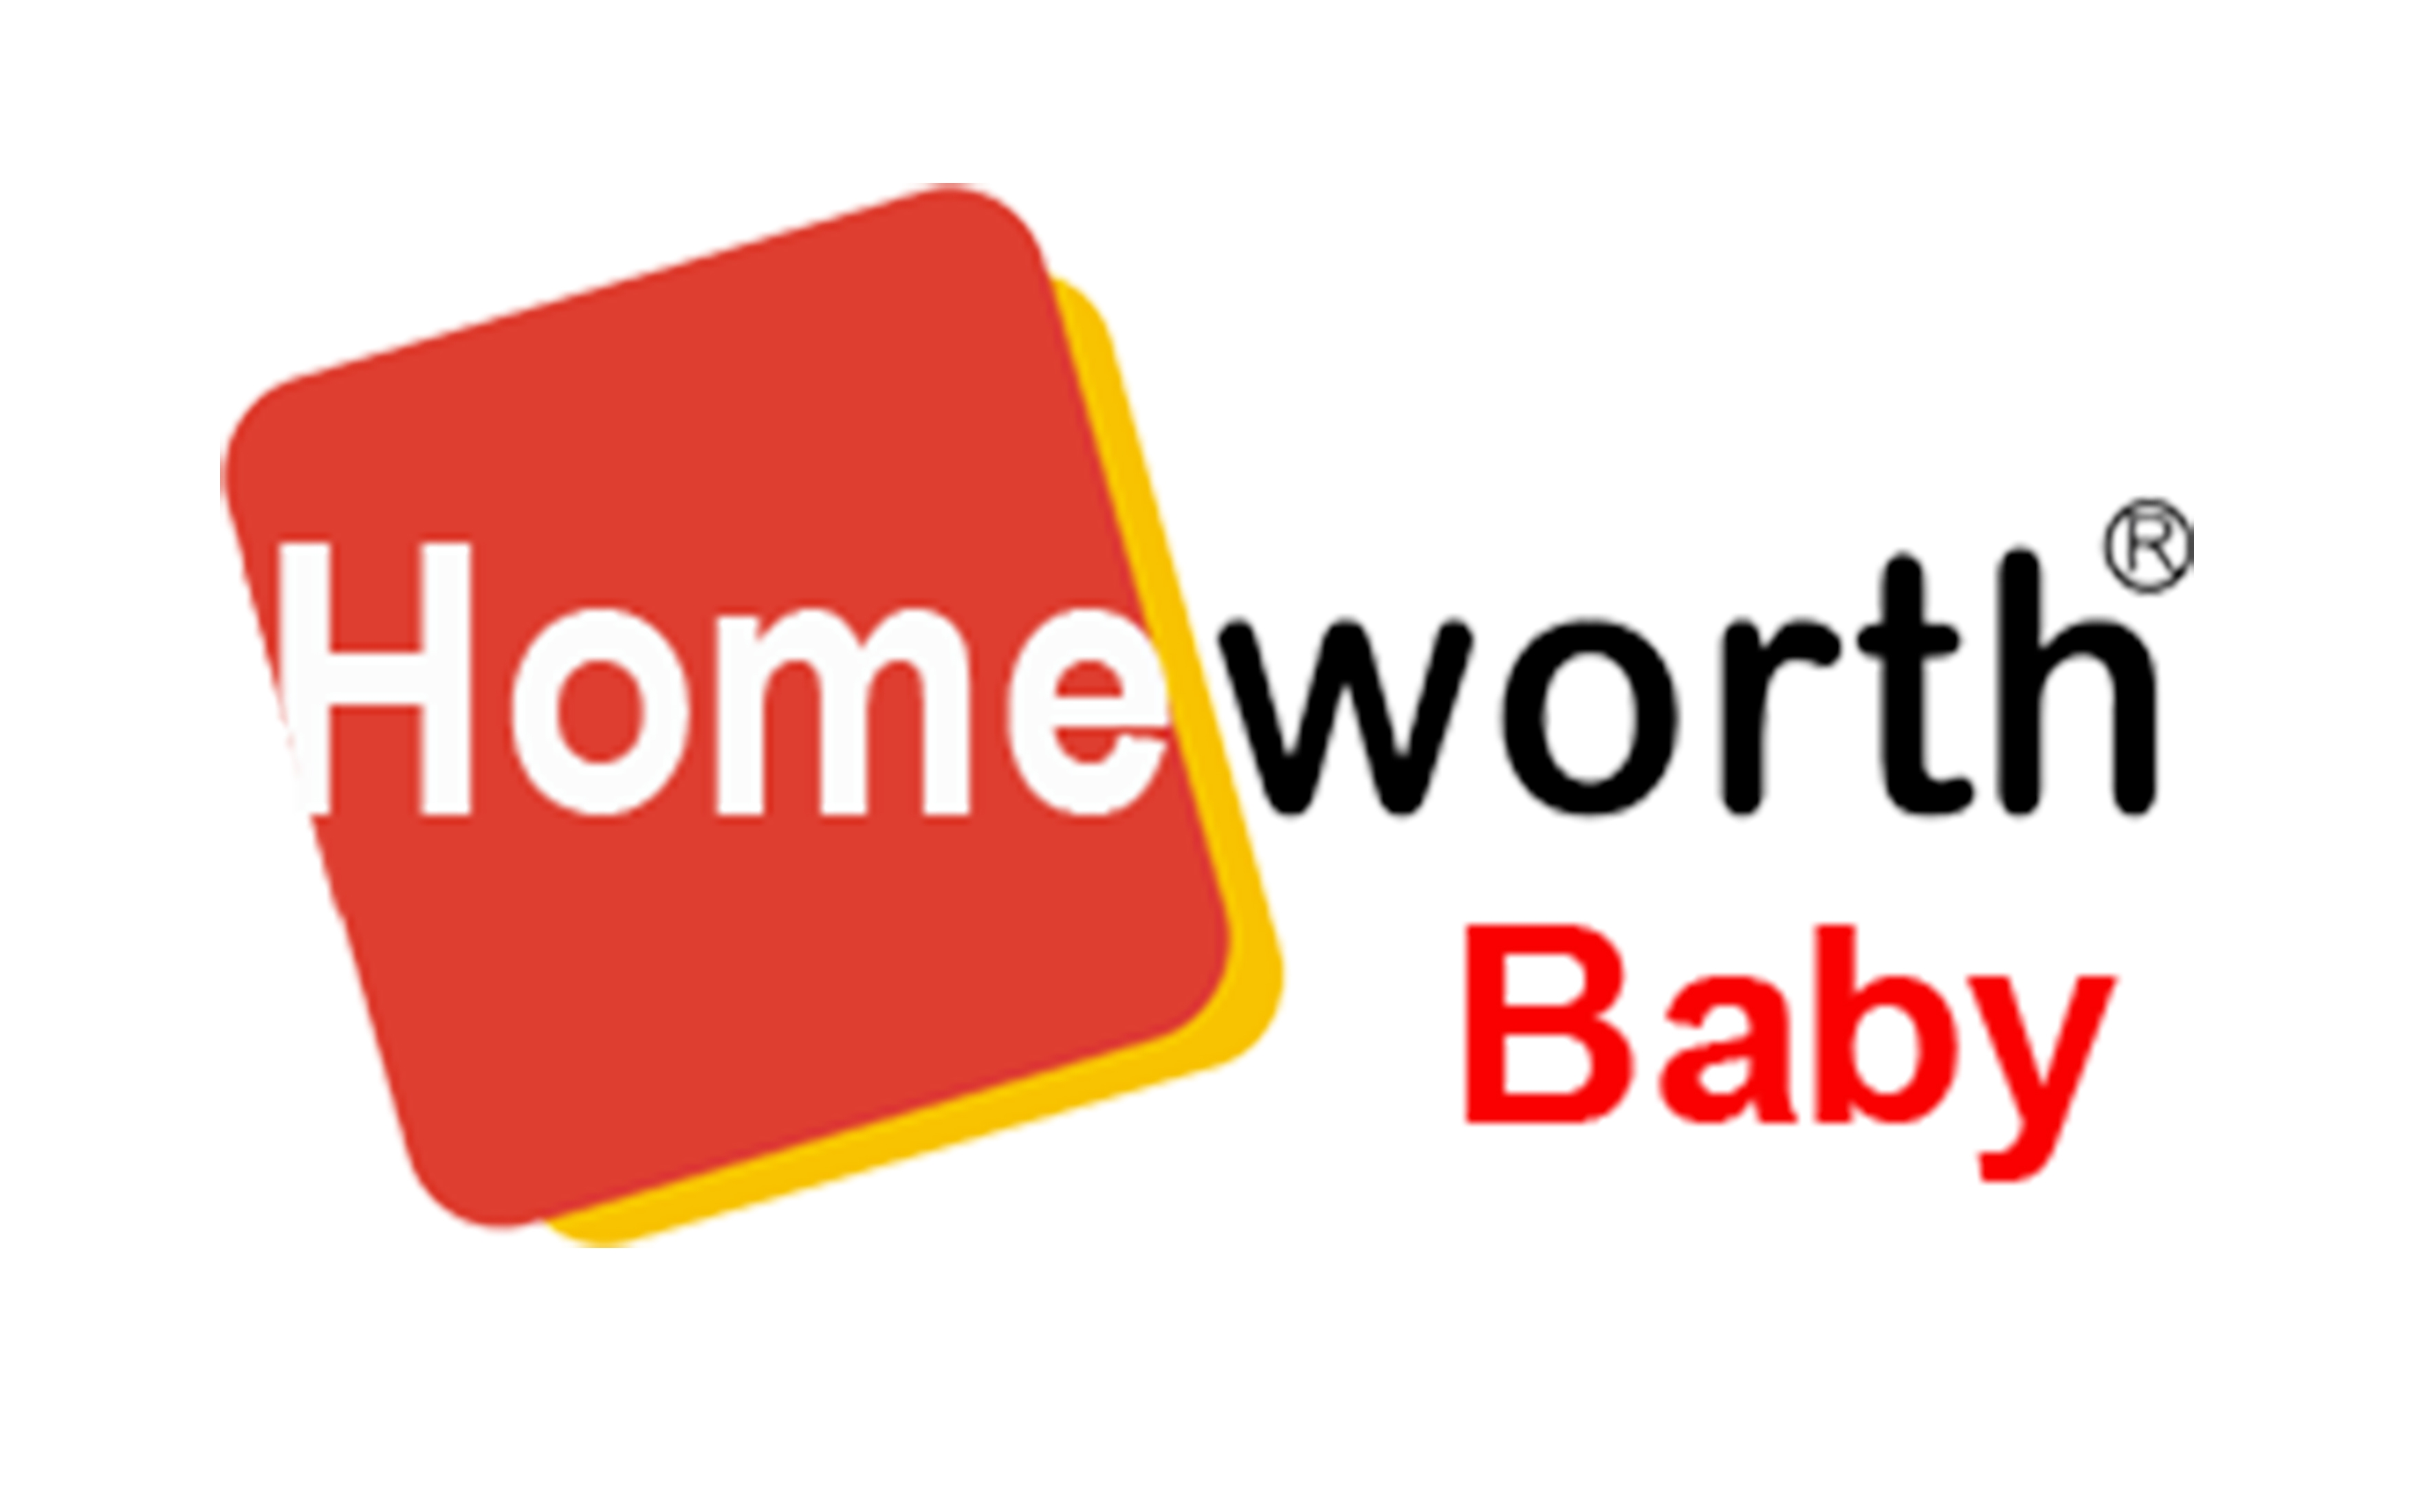 HOMEWORTH BABY